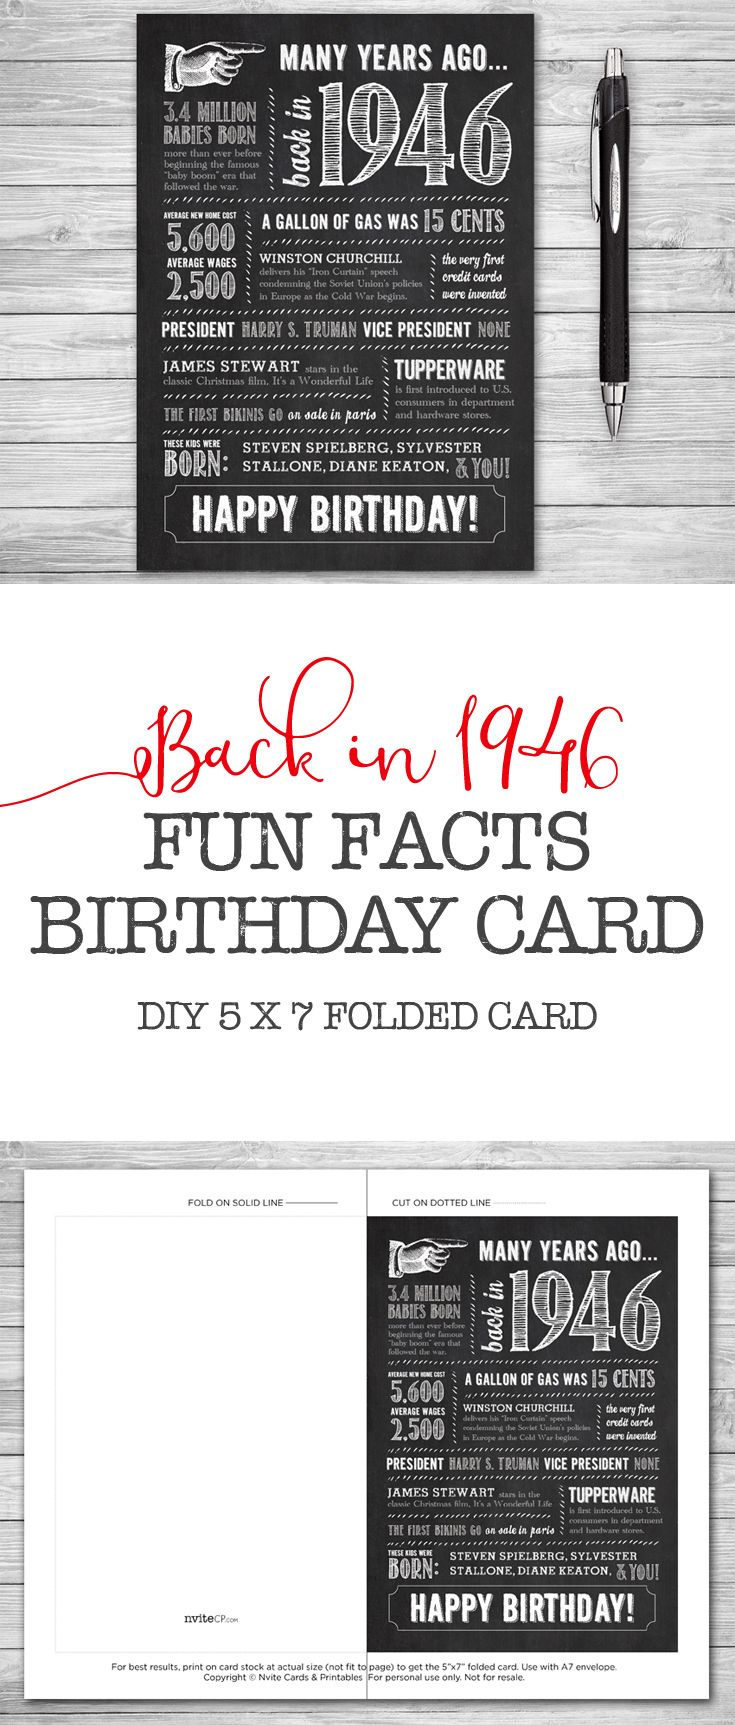 71st Birthday, Printable Card, 5x7 Folded, Many Years Ago Back in ...